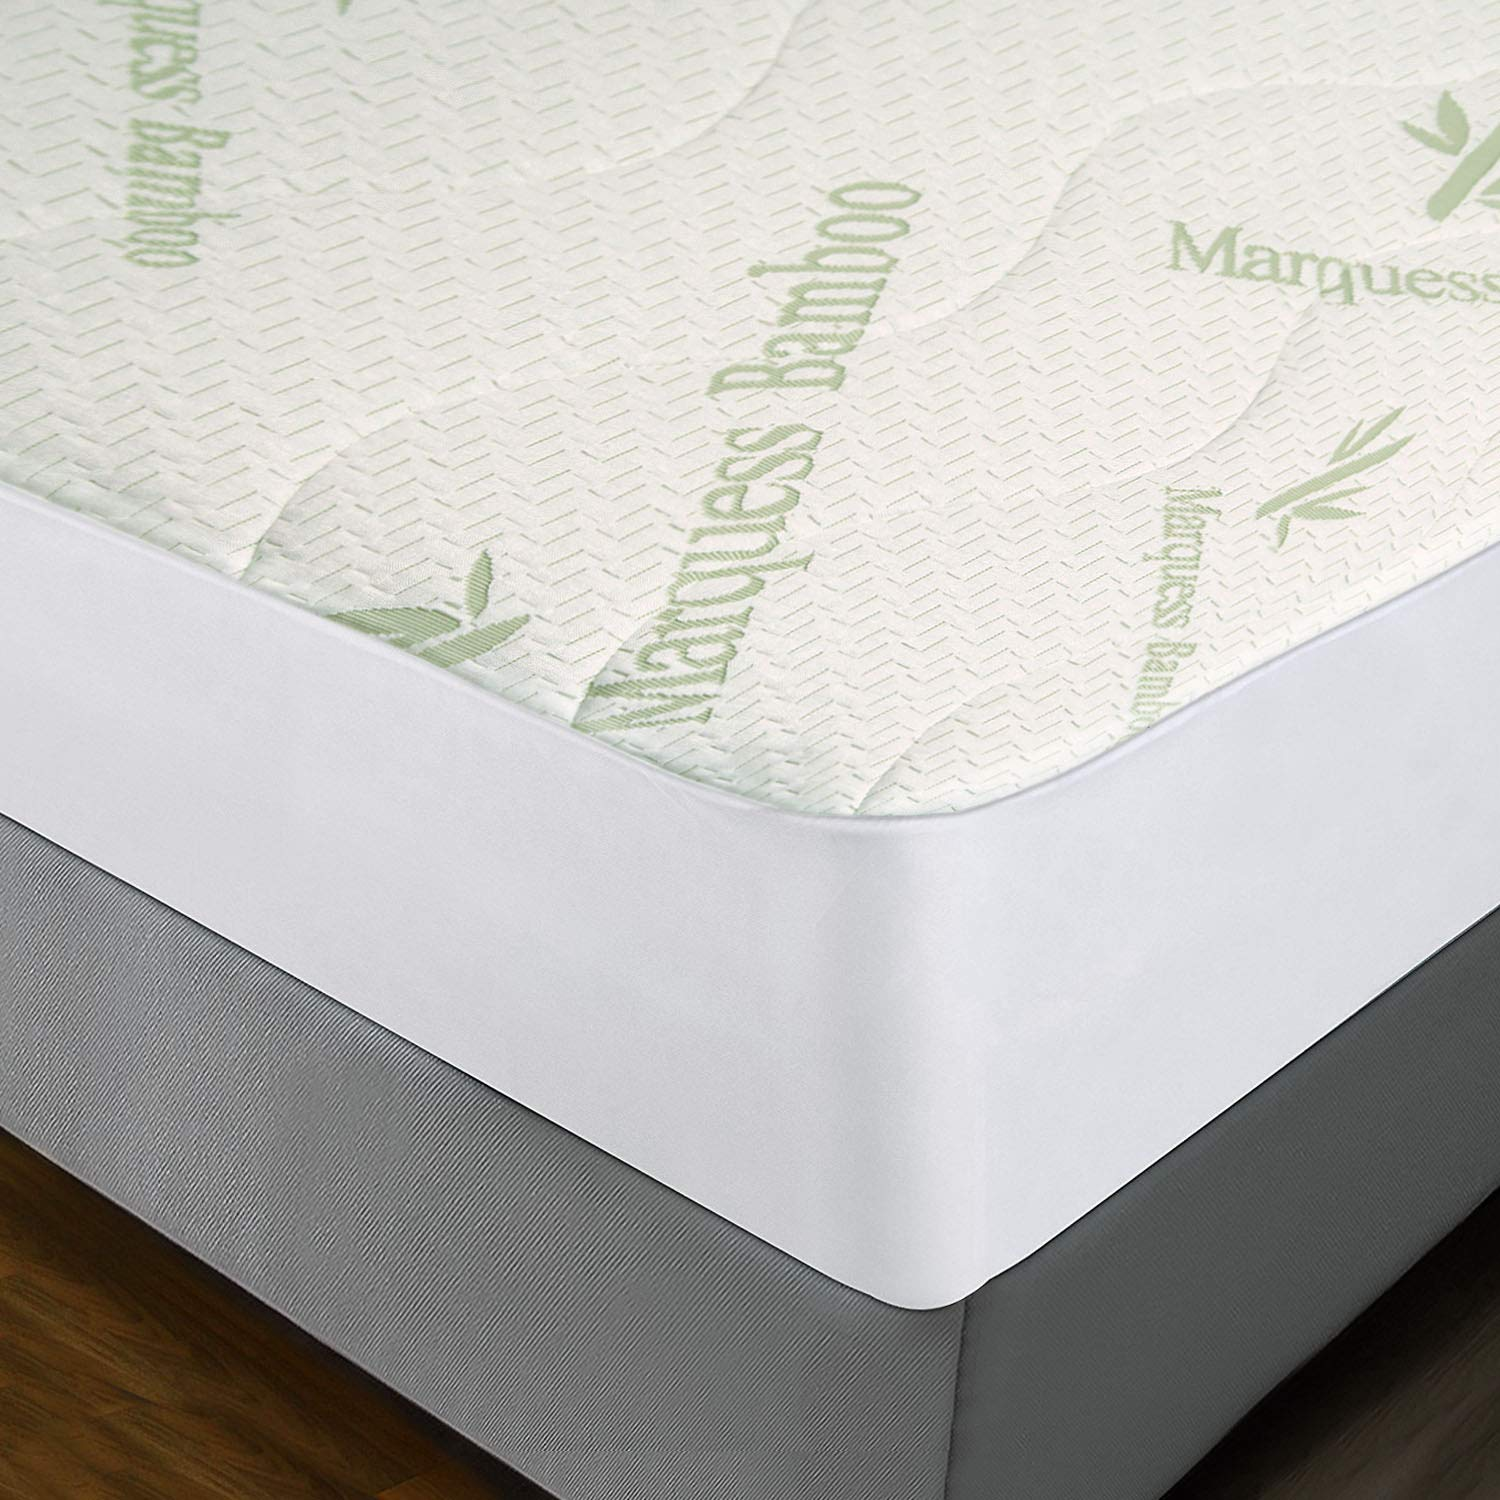 BABY TODDLER COT BED QUILTED BREATHABLEAND WATERPROOF MATTRESSES 140 X 70 X 13